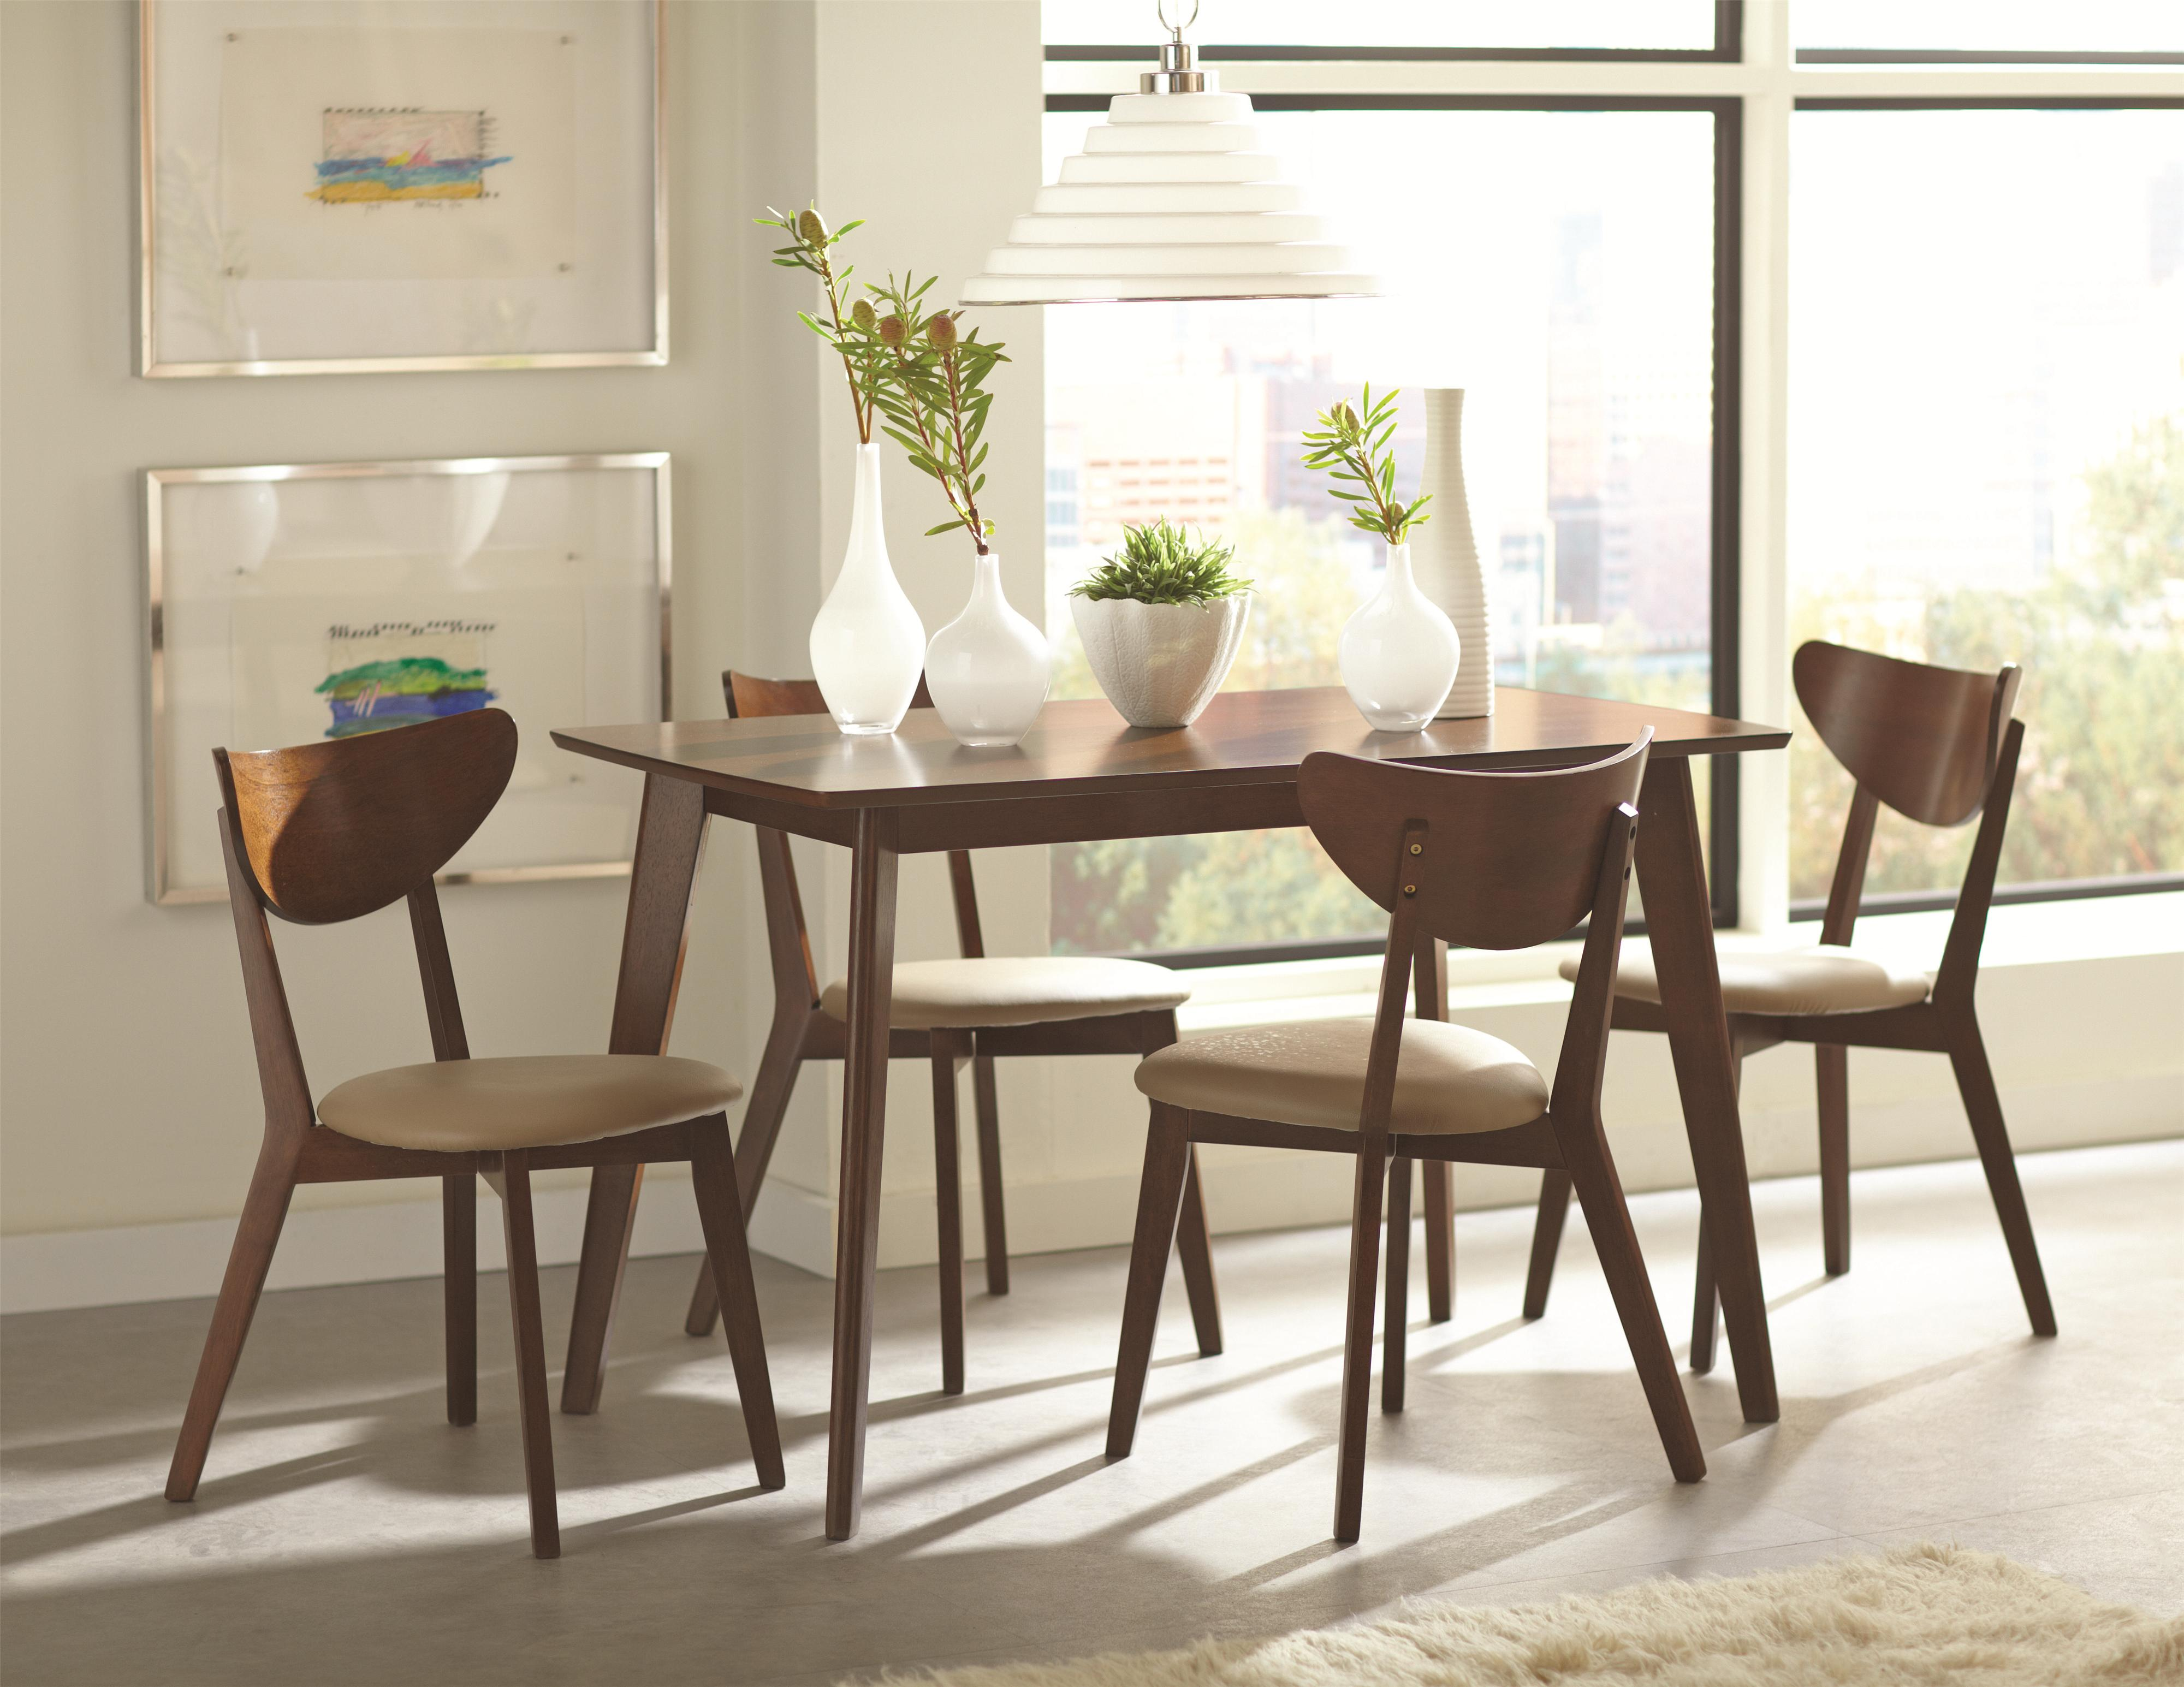 Coaster Kersey 103061 Brown Retro Mid Century Dining Table Set